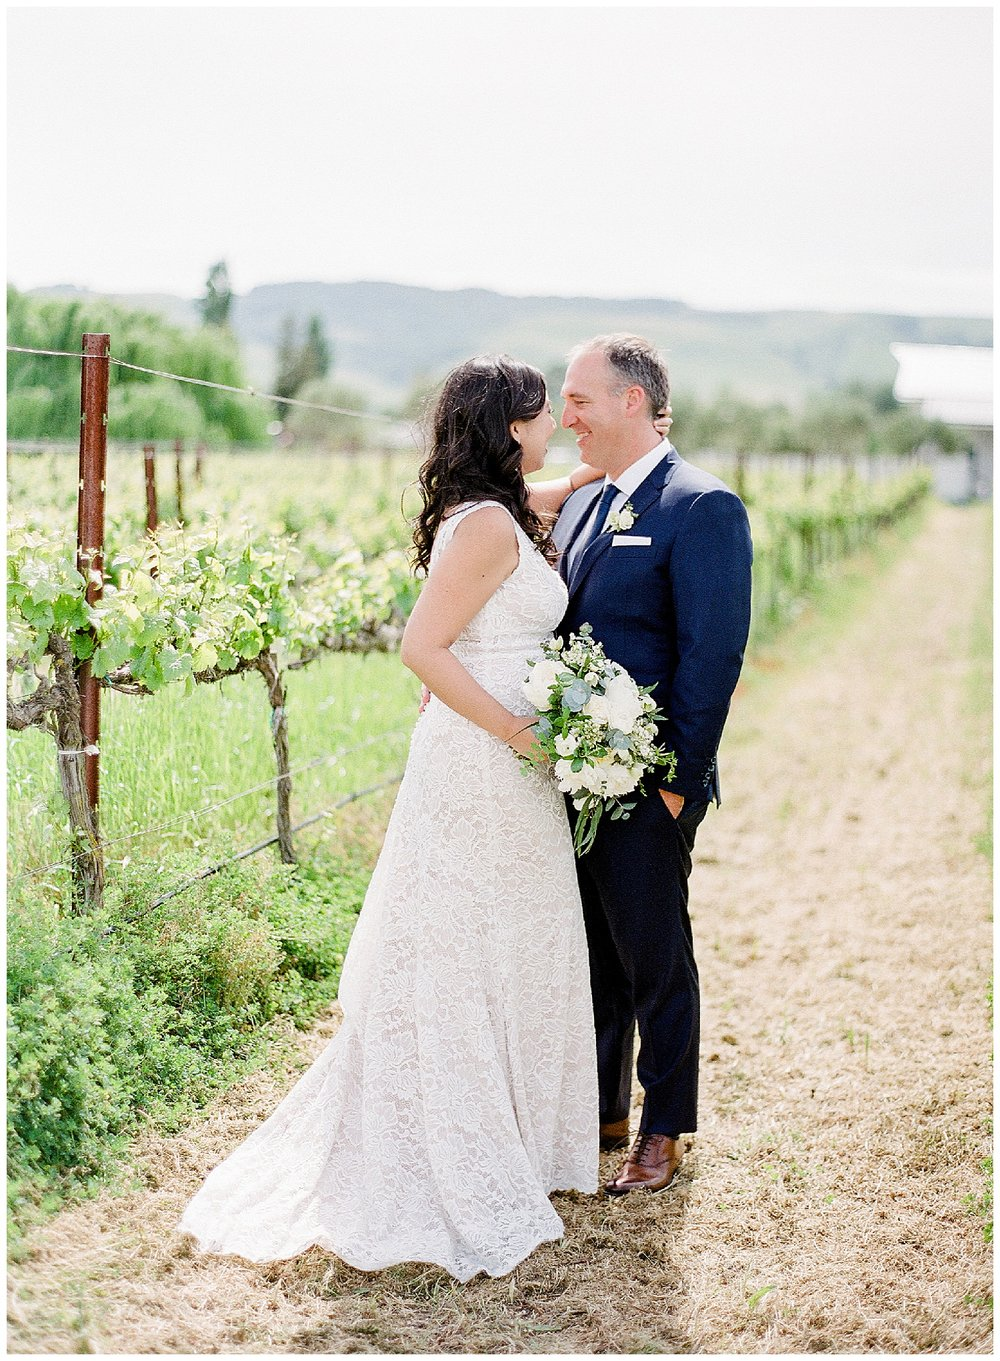 Janine_Licare_Photography_San_Francisco_Wedding_Photographer_Carneros_Tyge_Williams_Sonoma_Napa_0064.jpg